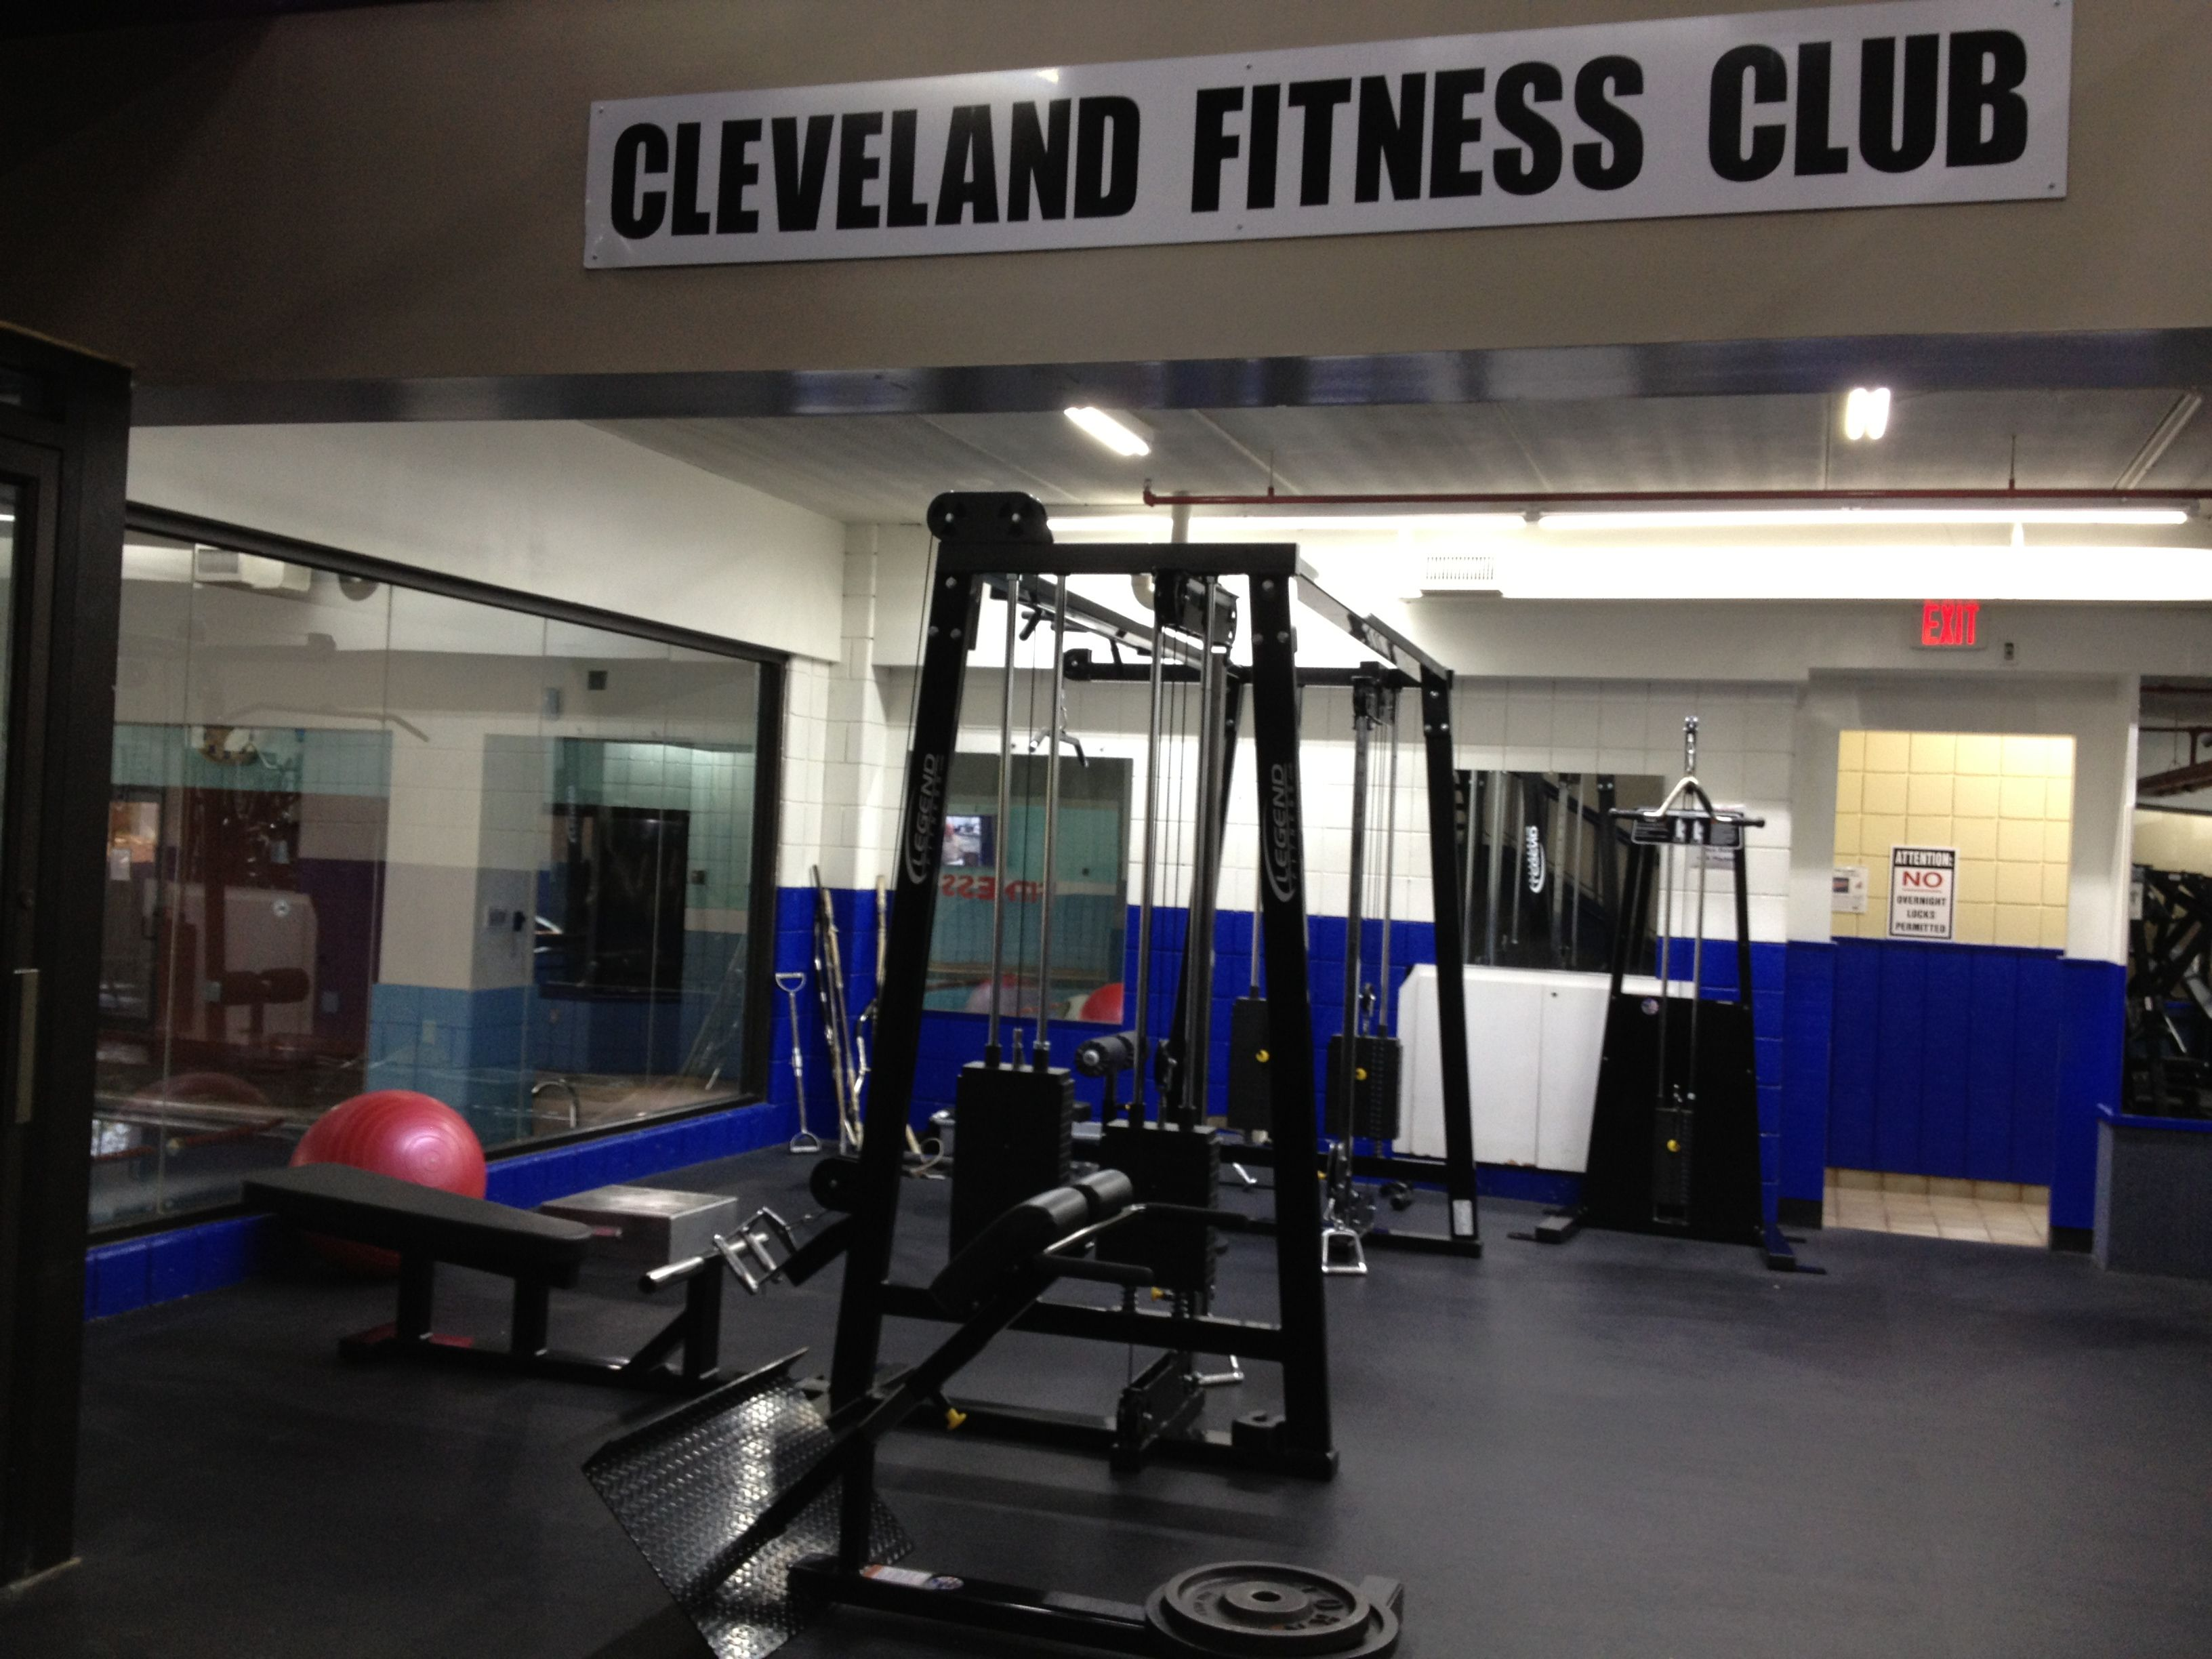 Cleveland fitness club offers lots of types of weight equipment